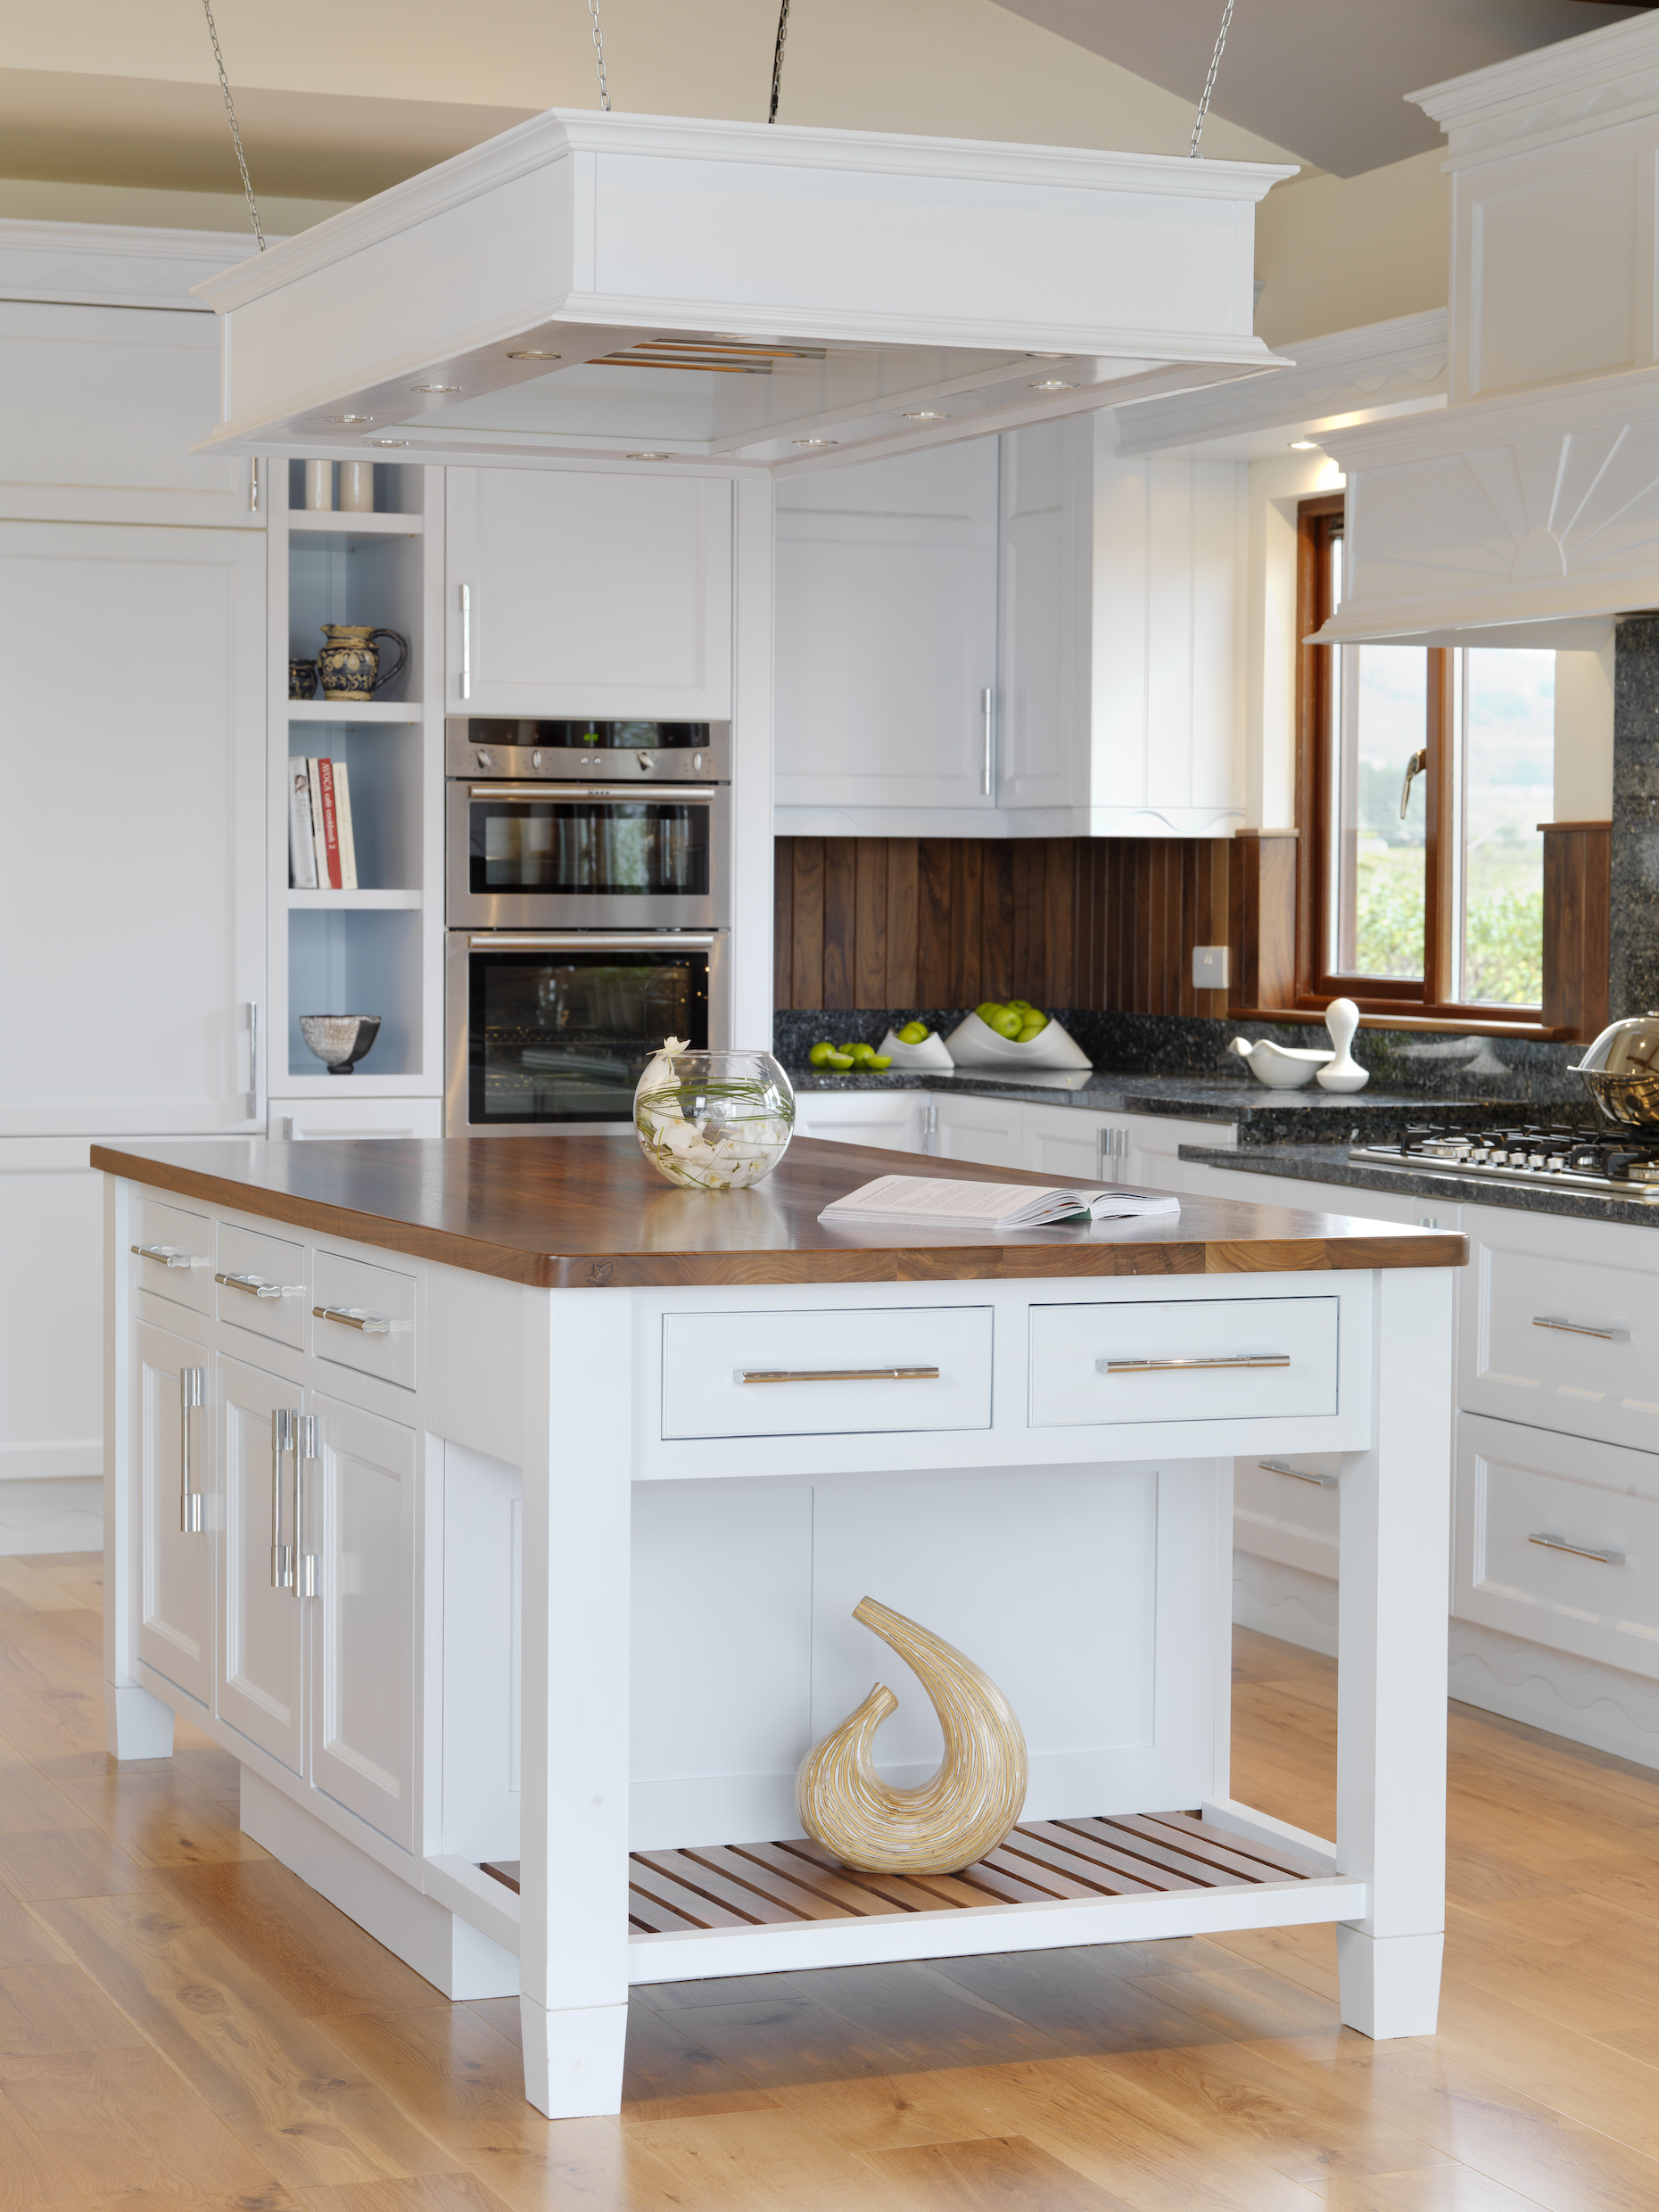 Kitchen free standing cabinets Photo - 10